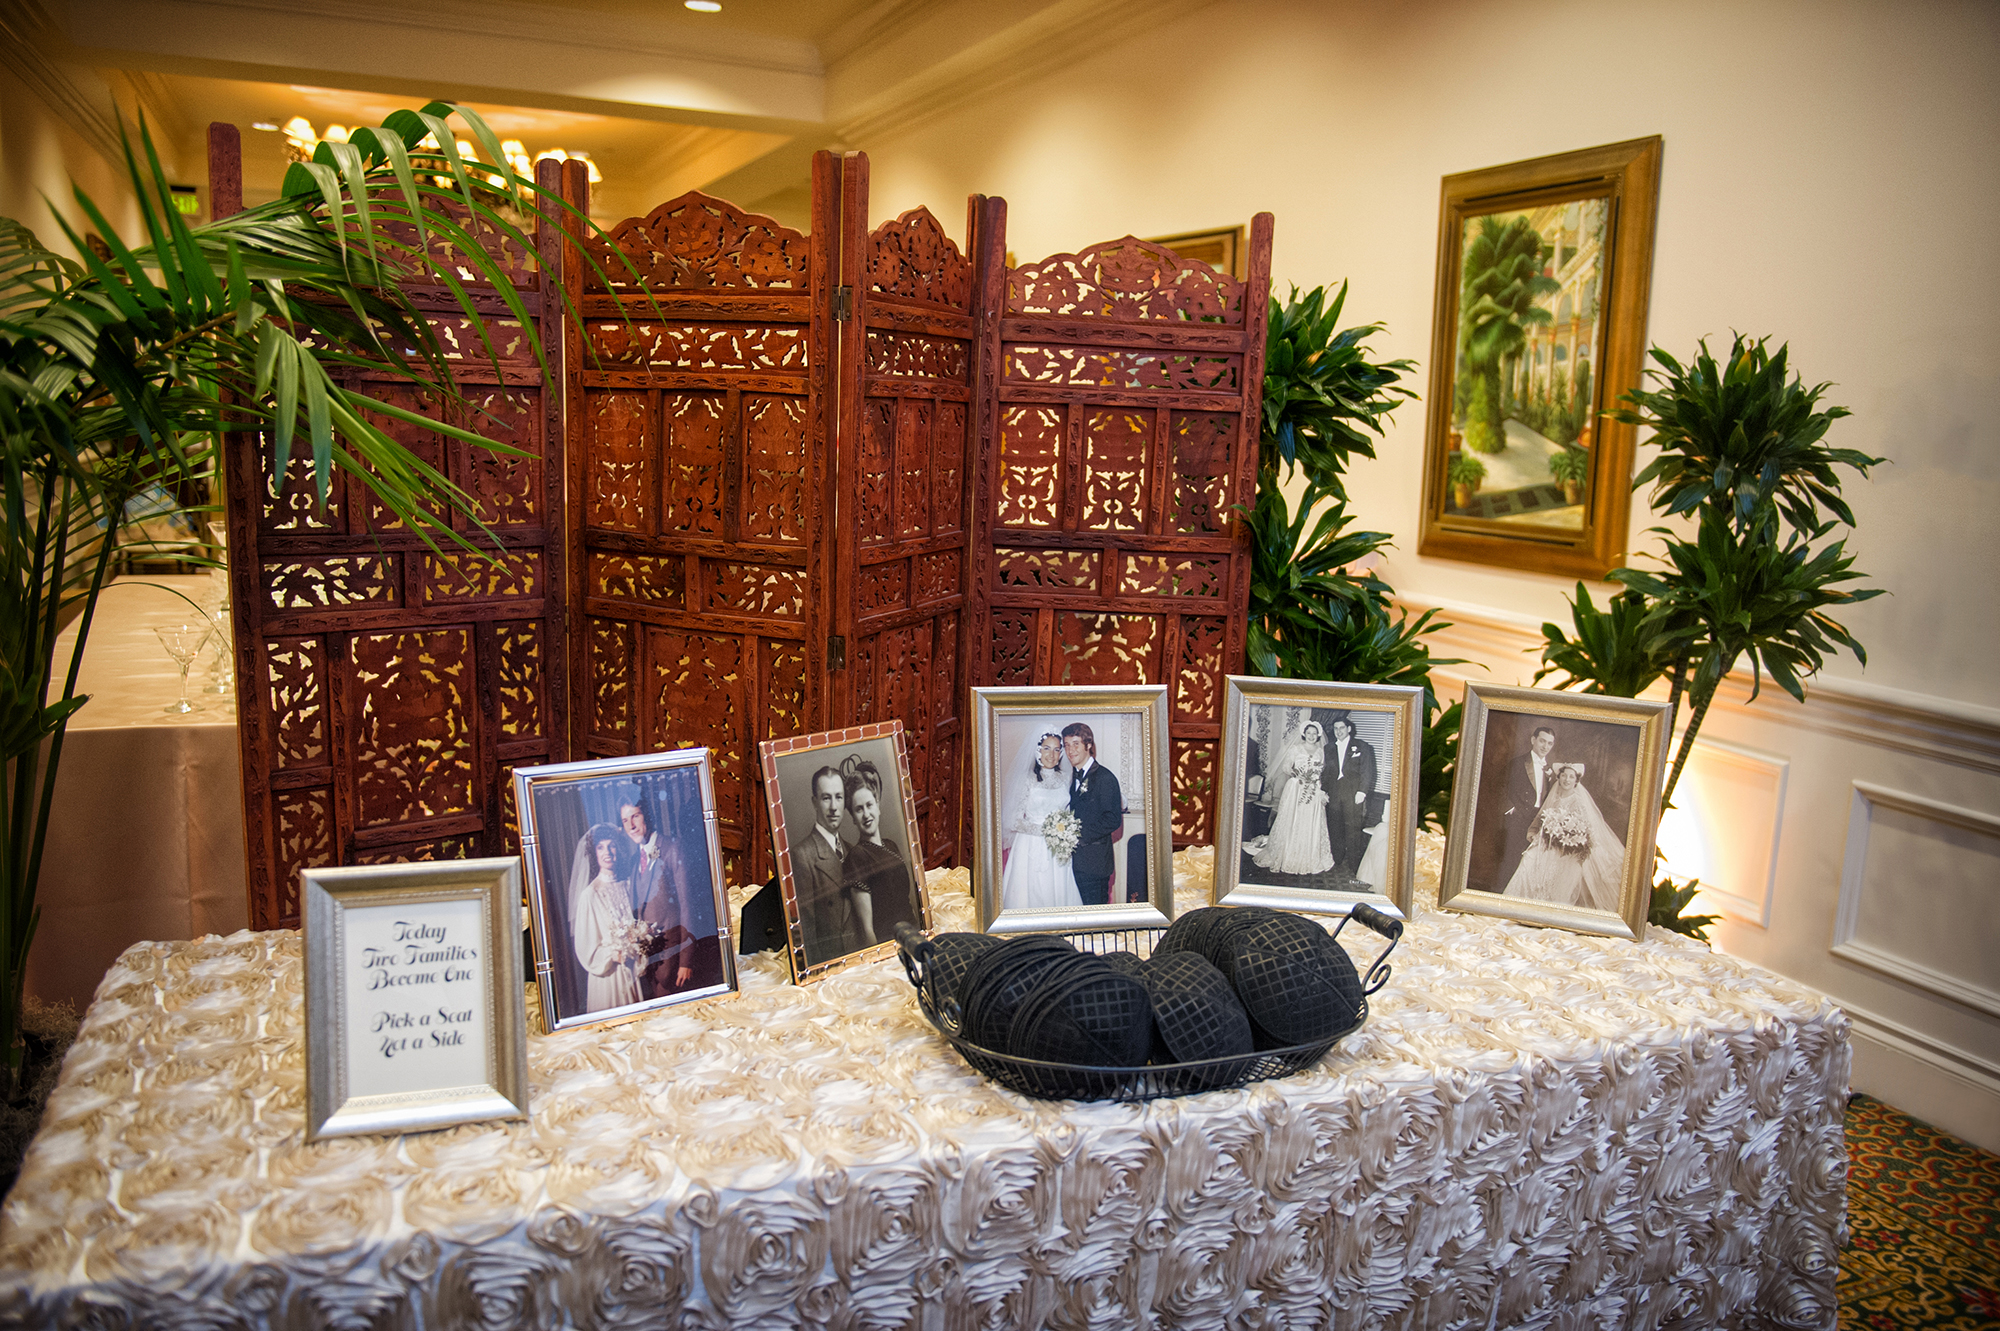 boca-raton-jewish-wedding-jeff-kolodny-photos-12